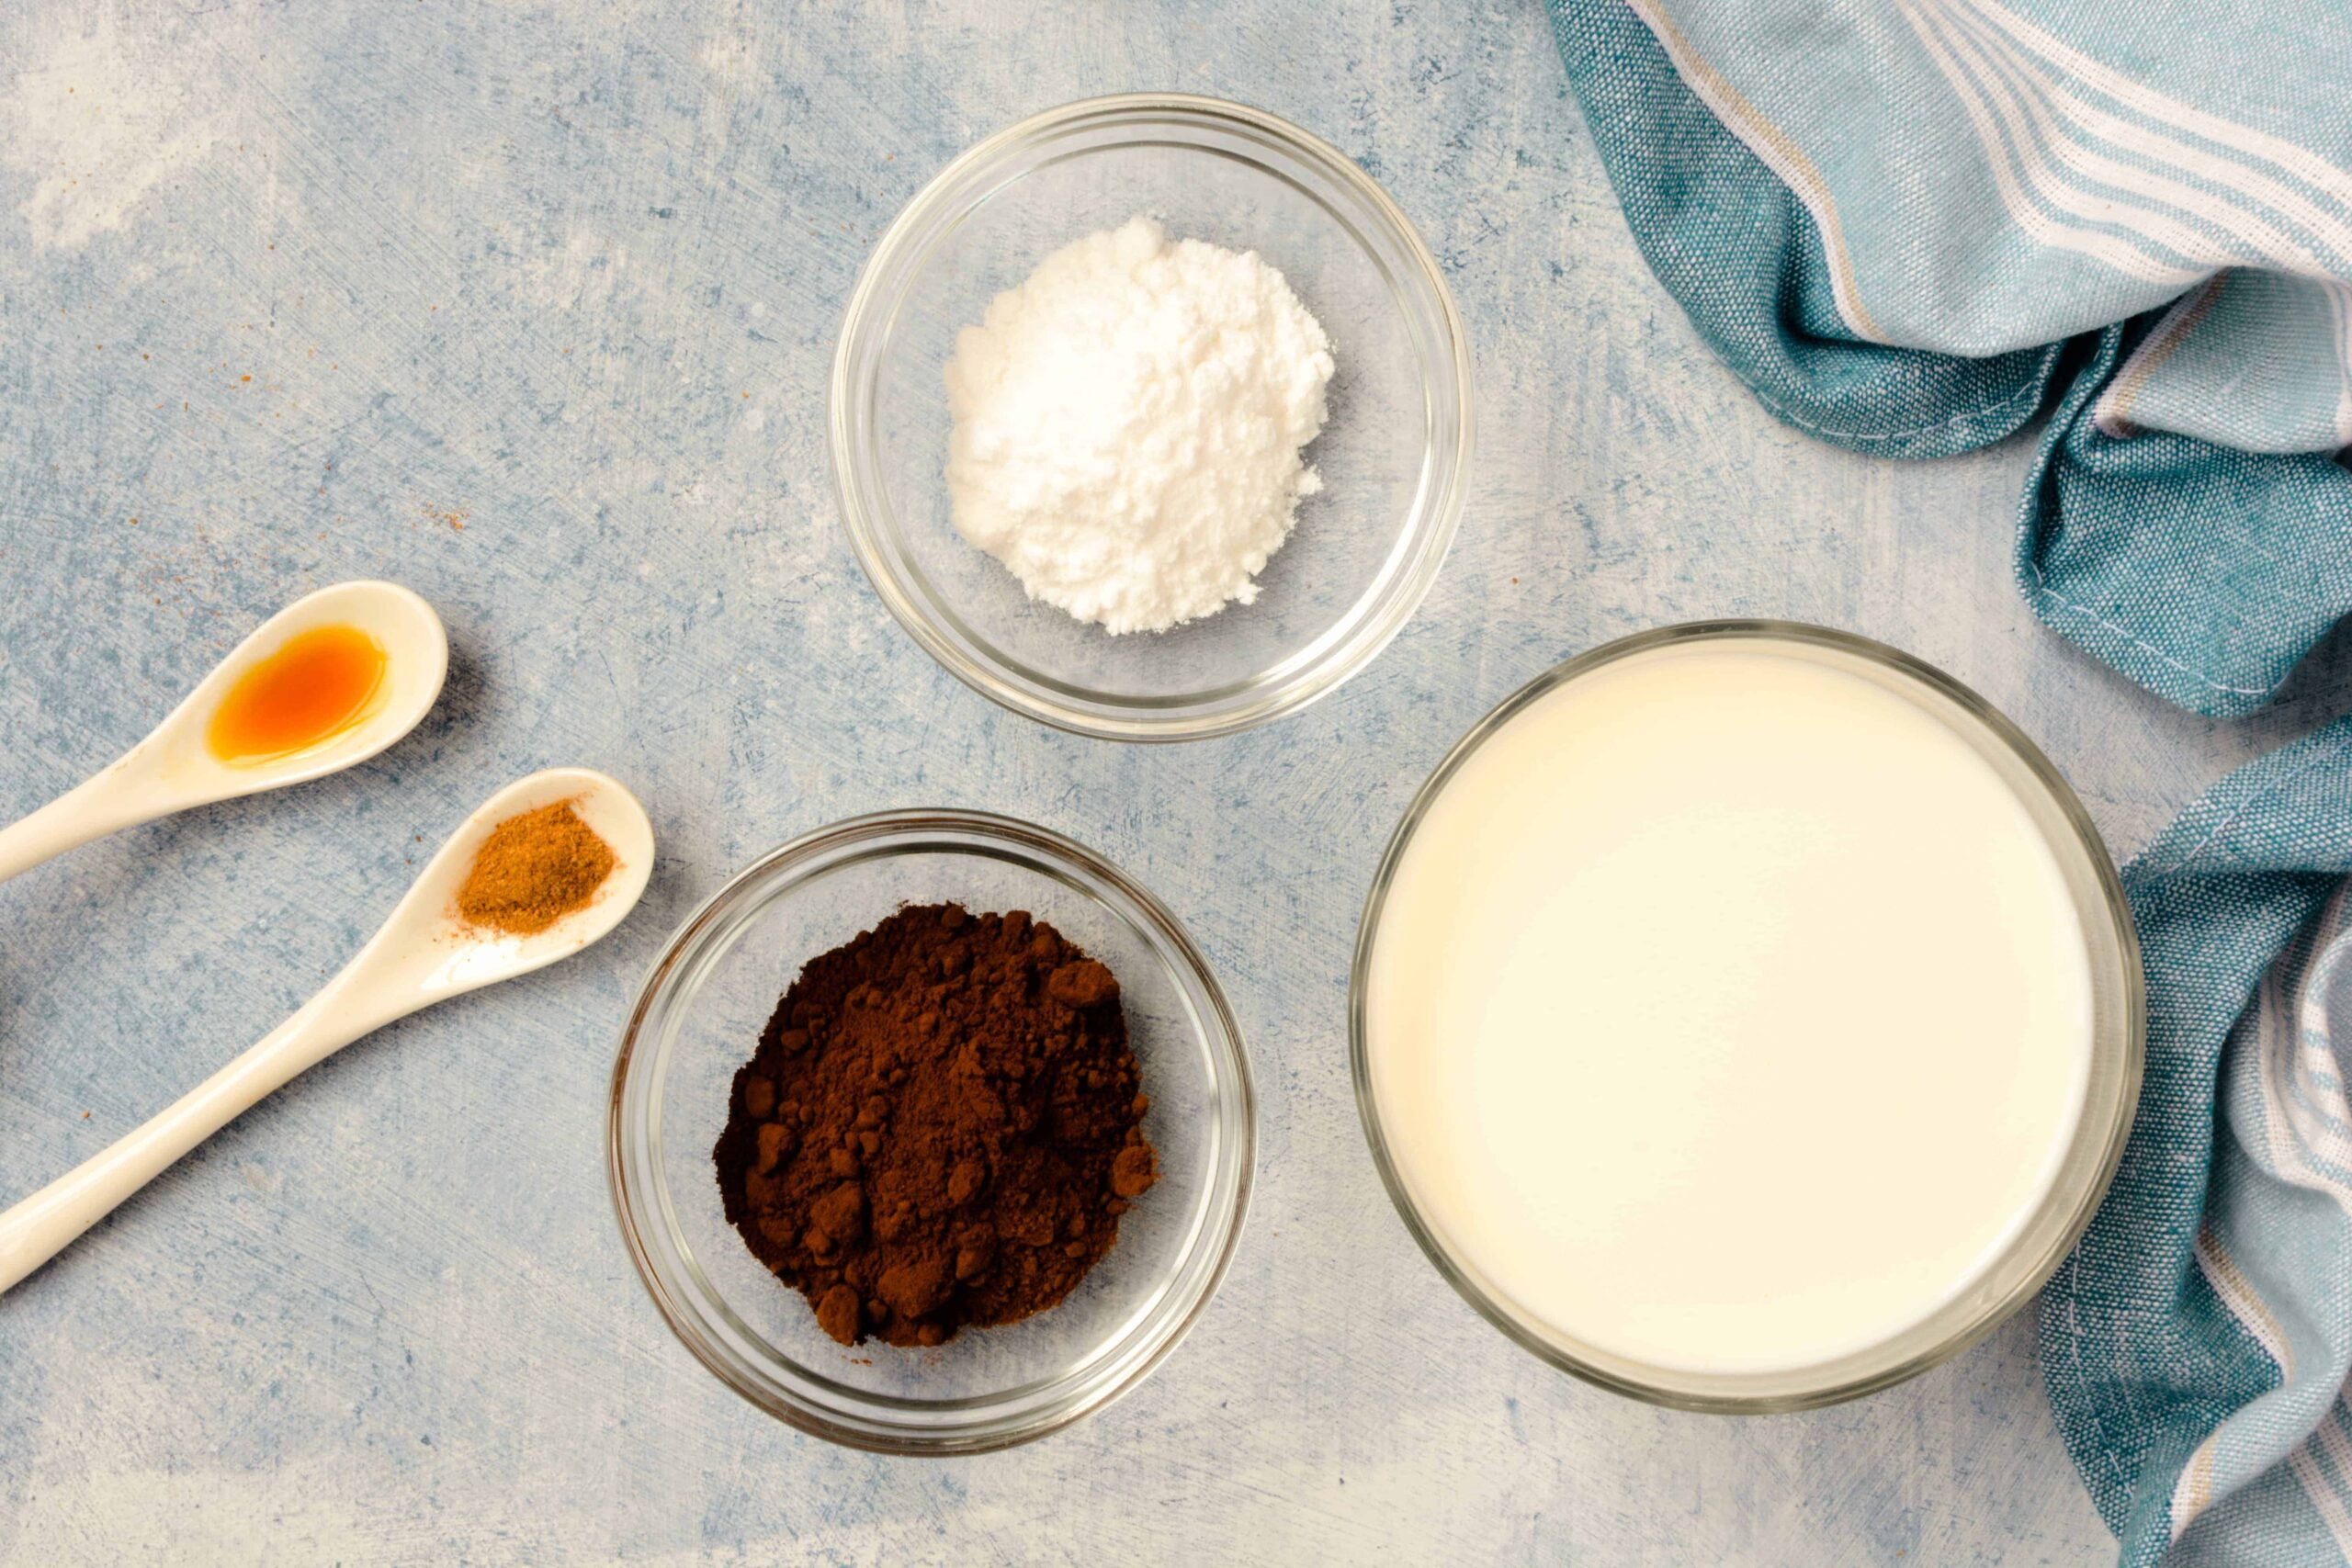 ingredients for keto chocolate milk